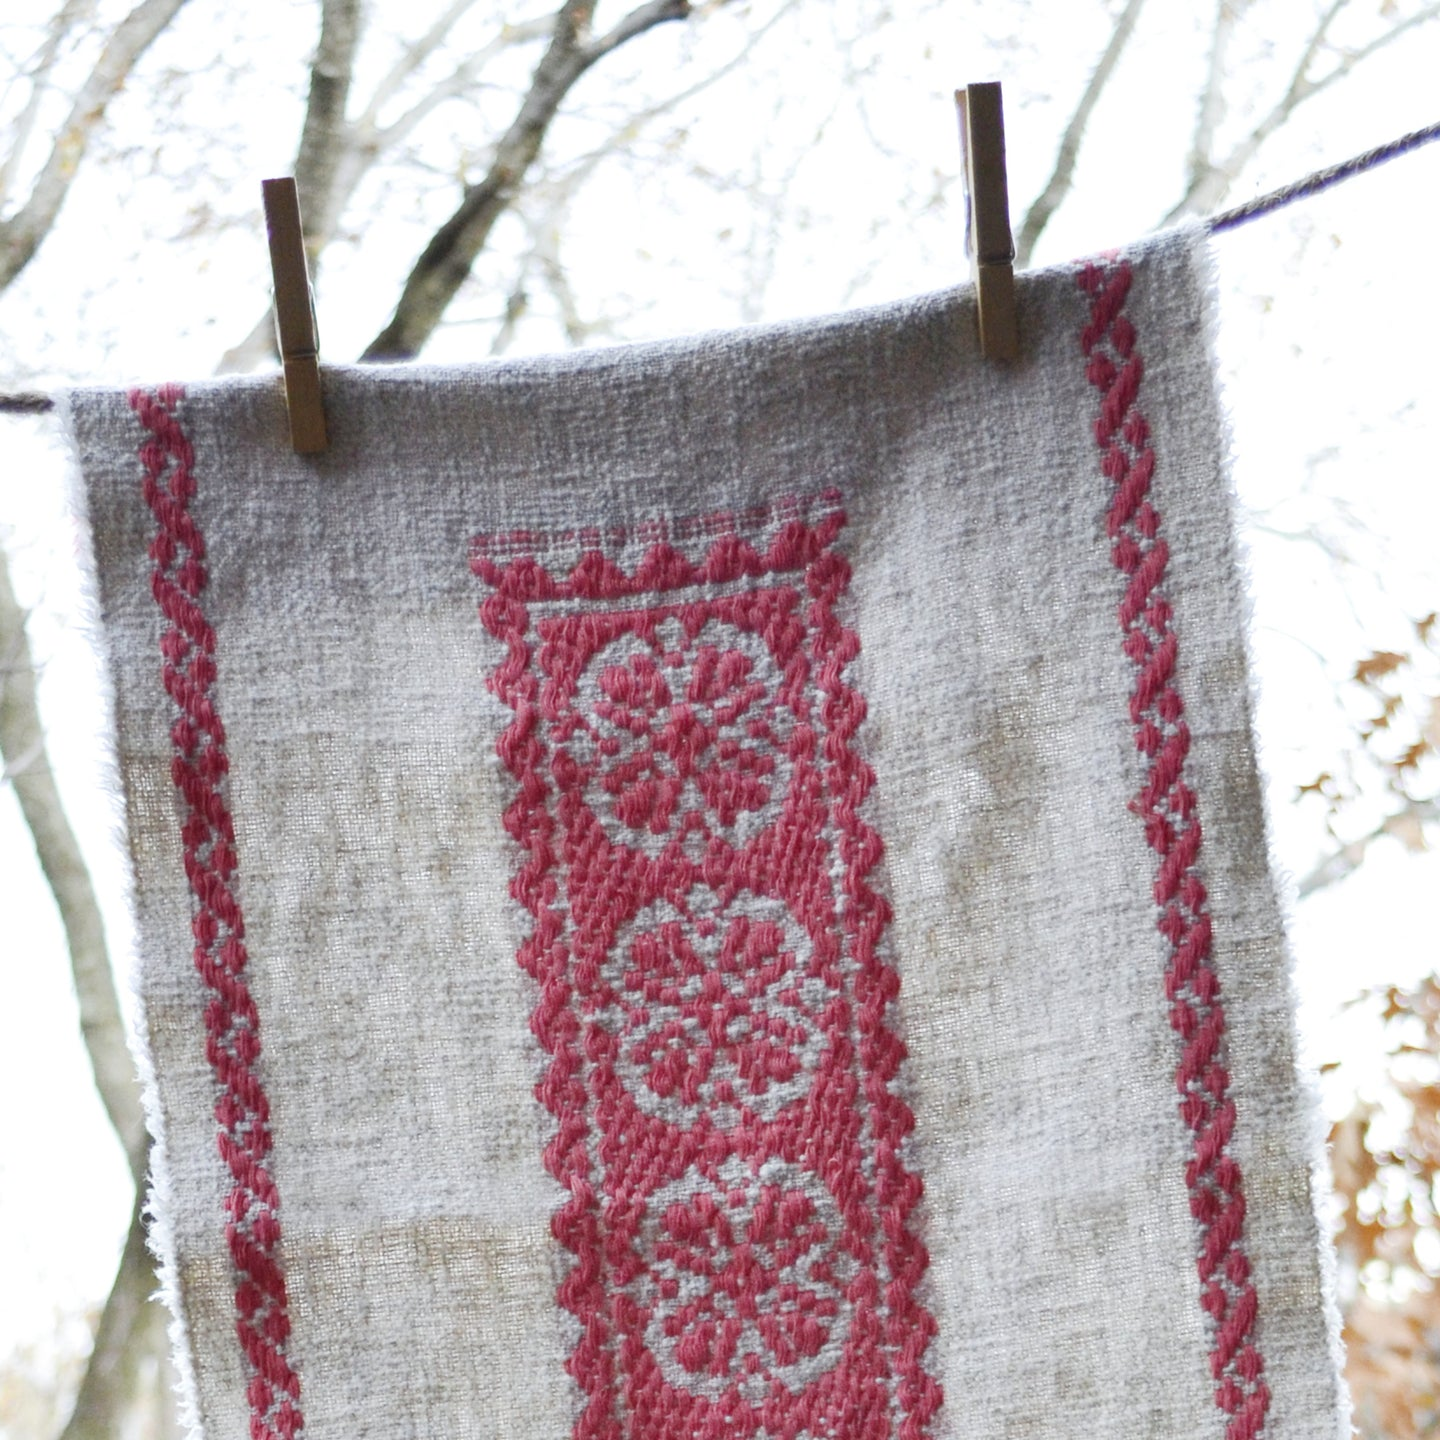 Vintage table runner - pink woven pattern on raw linen